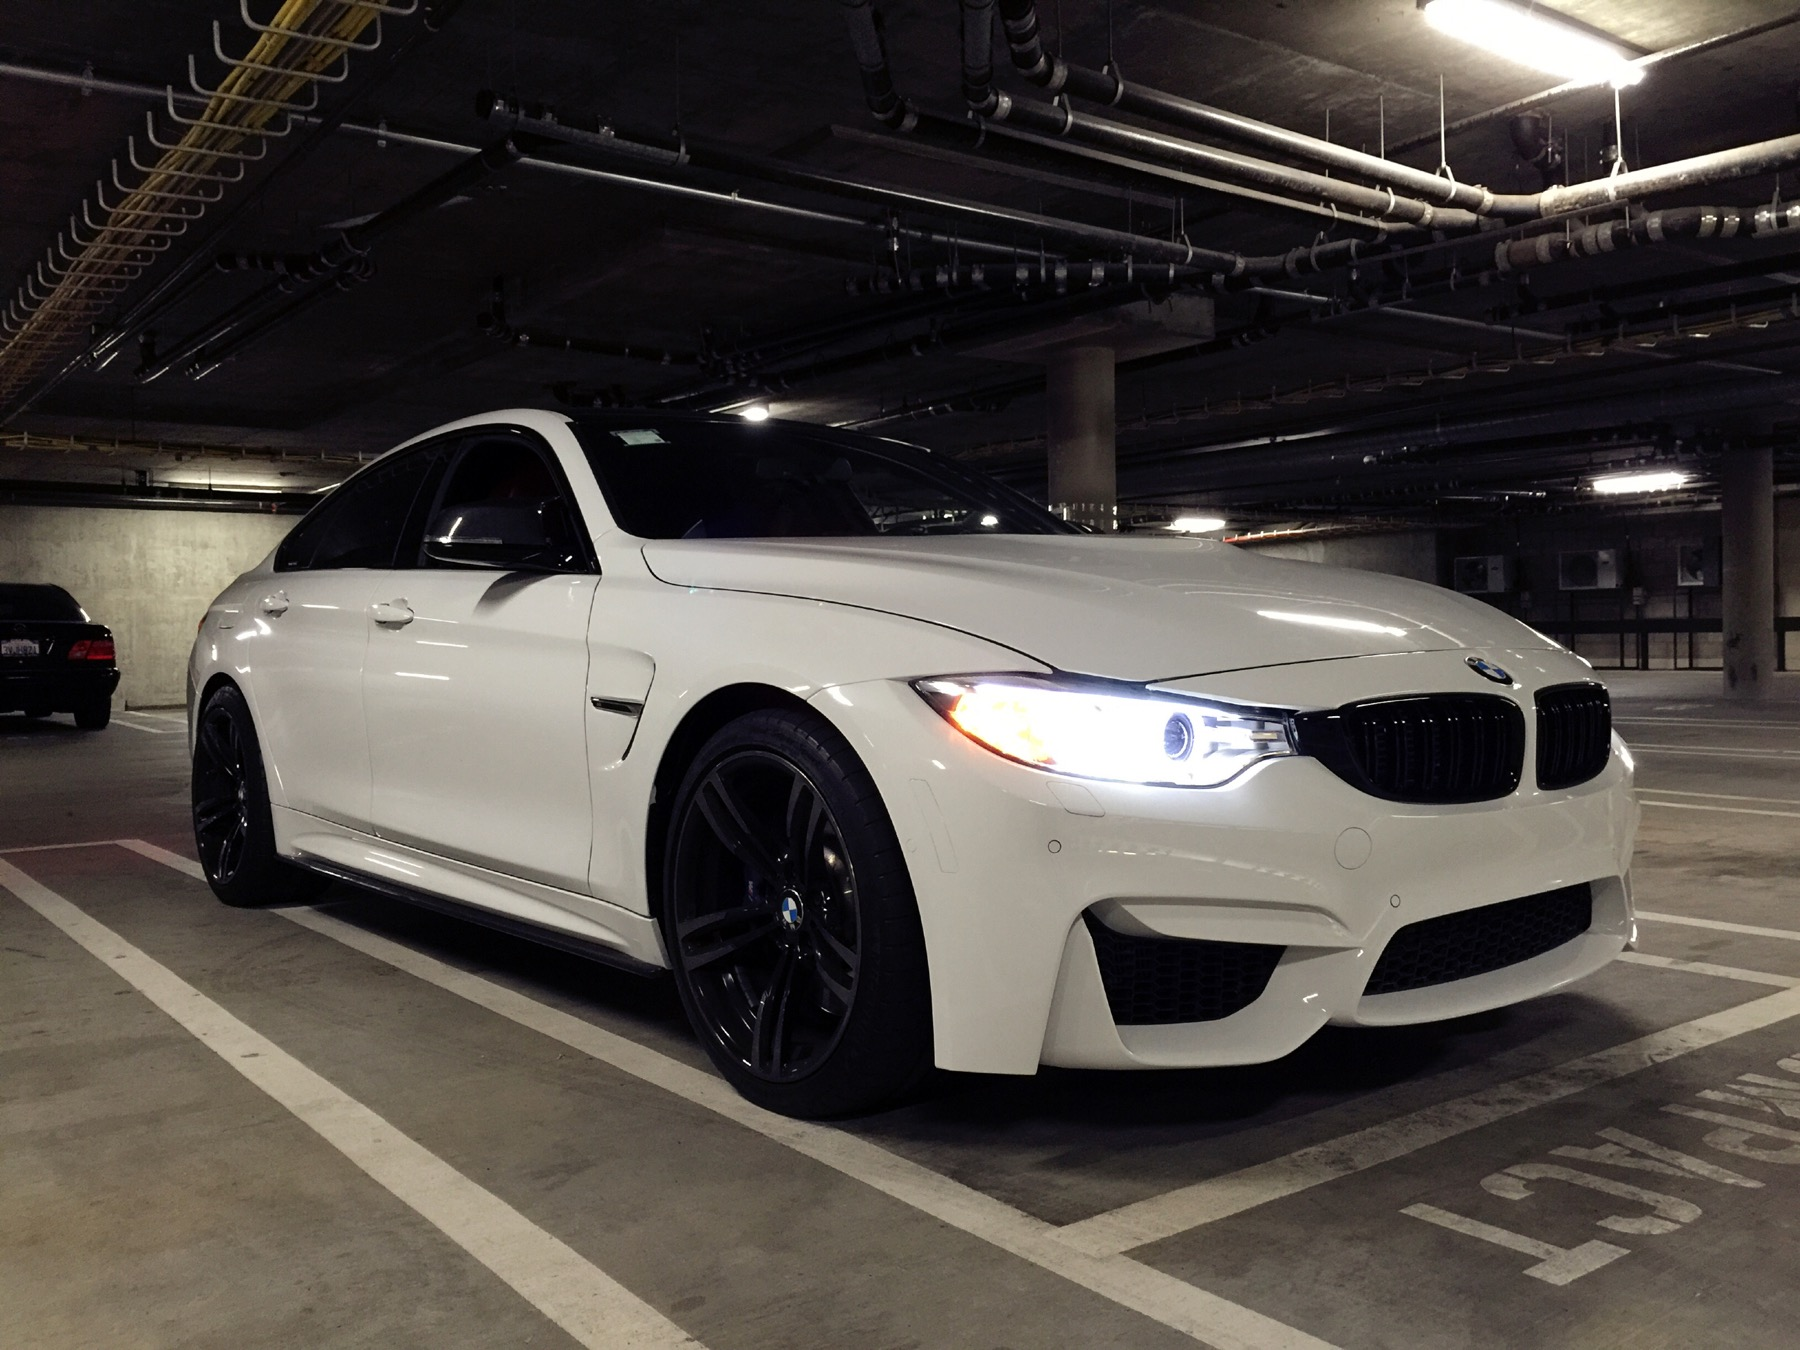 my build 435i gran coupe to m4 conversion oem 437m wheels awe custom quad exhaust. Black Bedroom Furniture Sets. Home Design Ideas